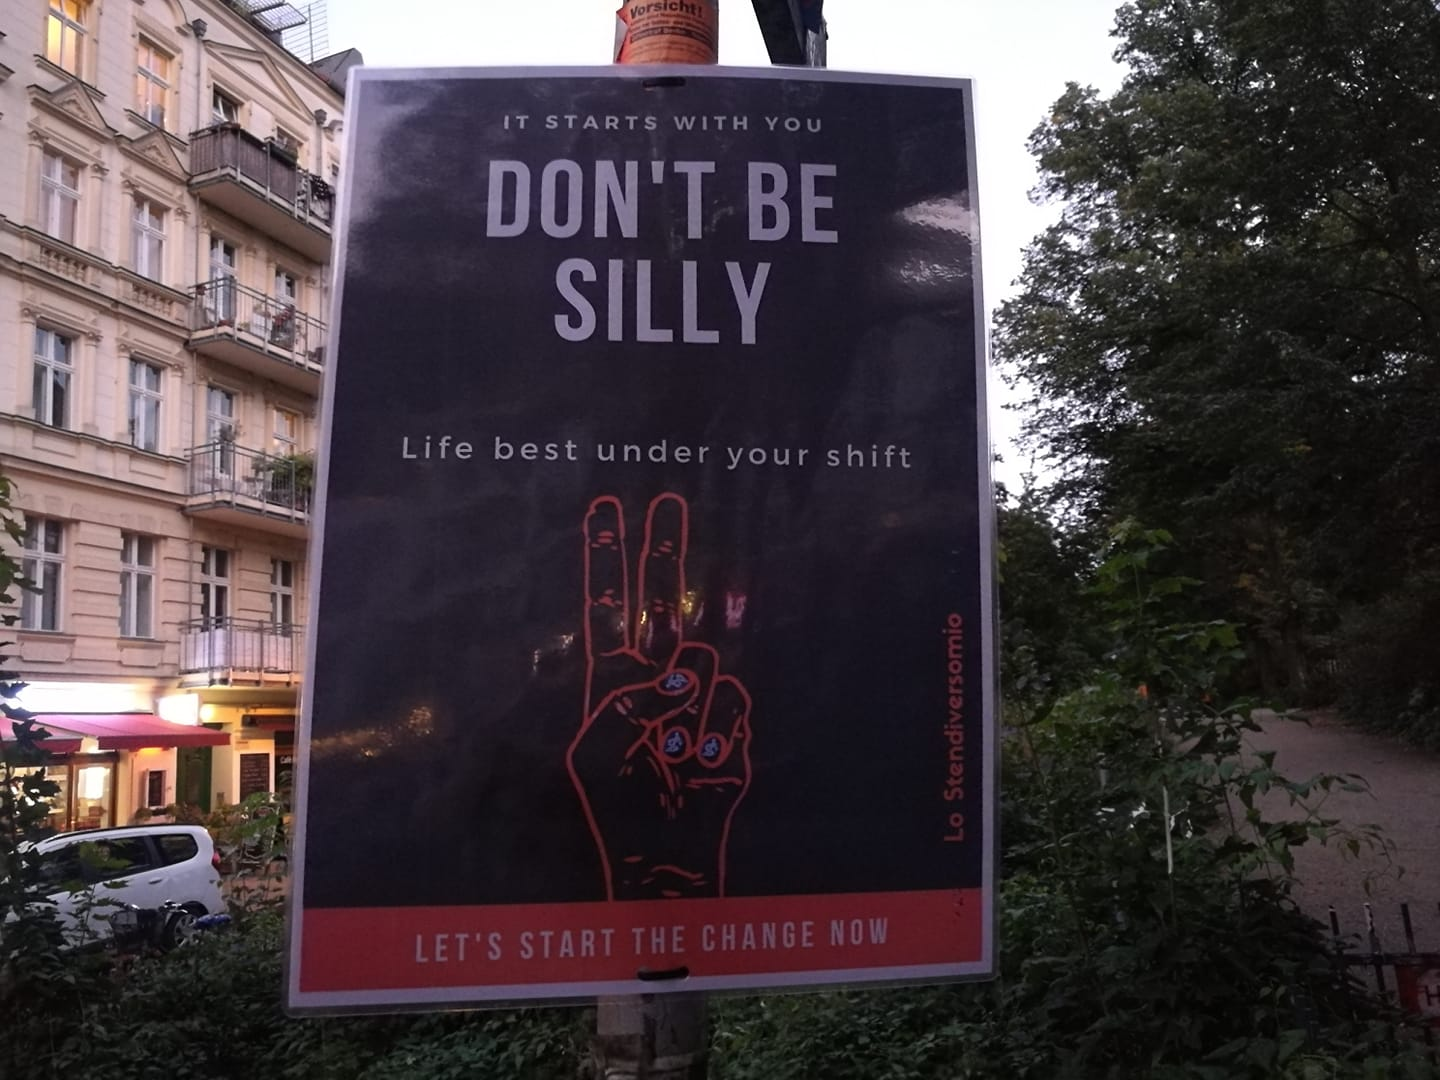 Silly on Prenzlauer Berg